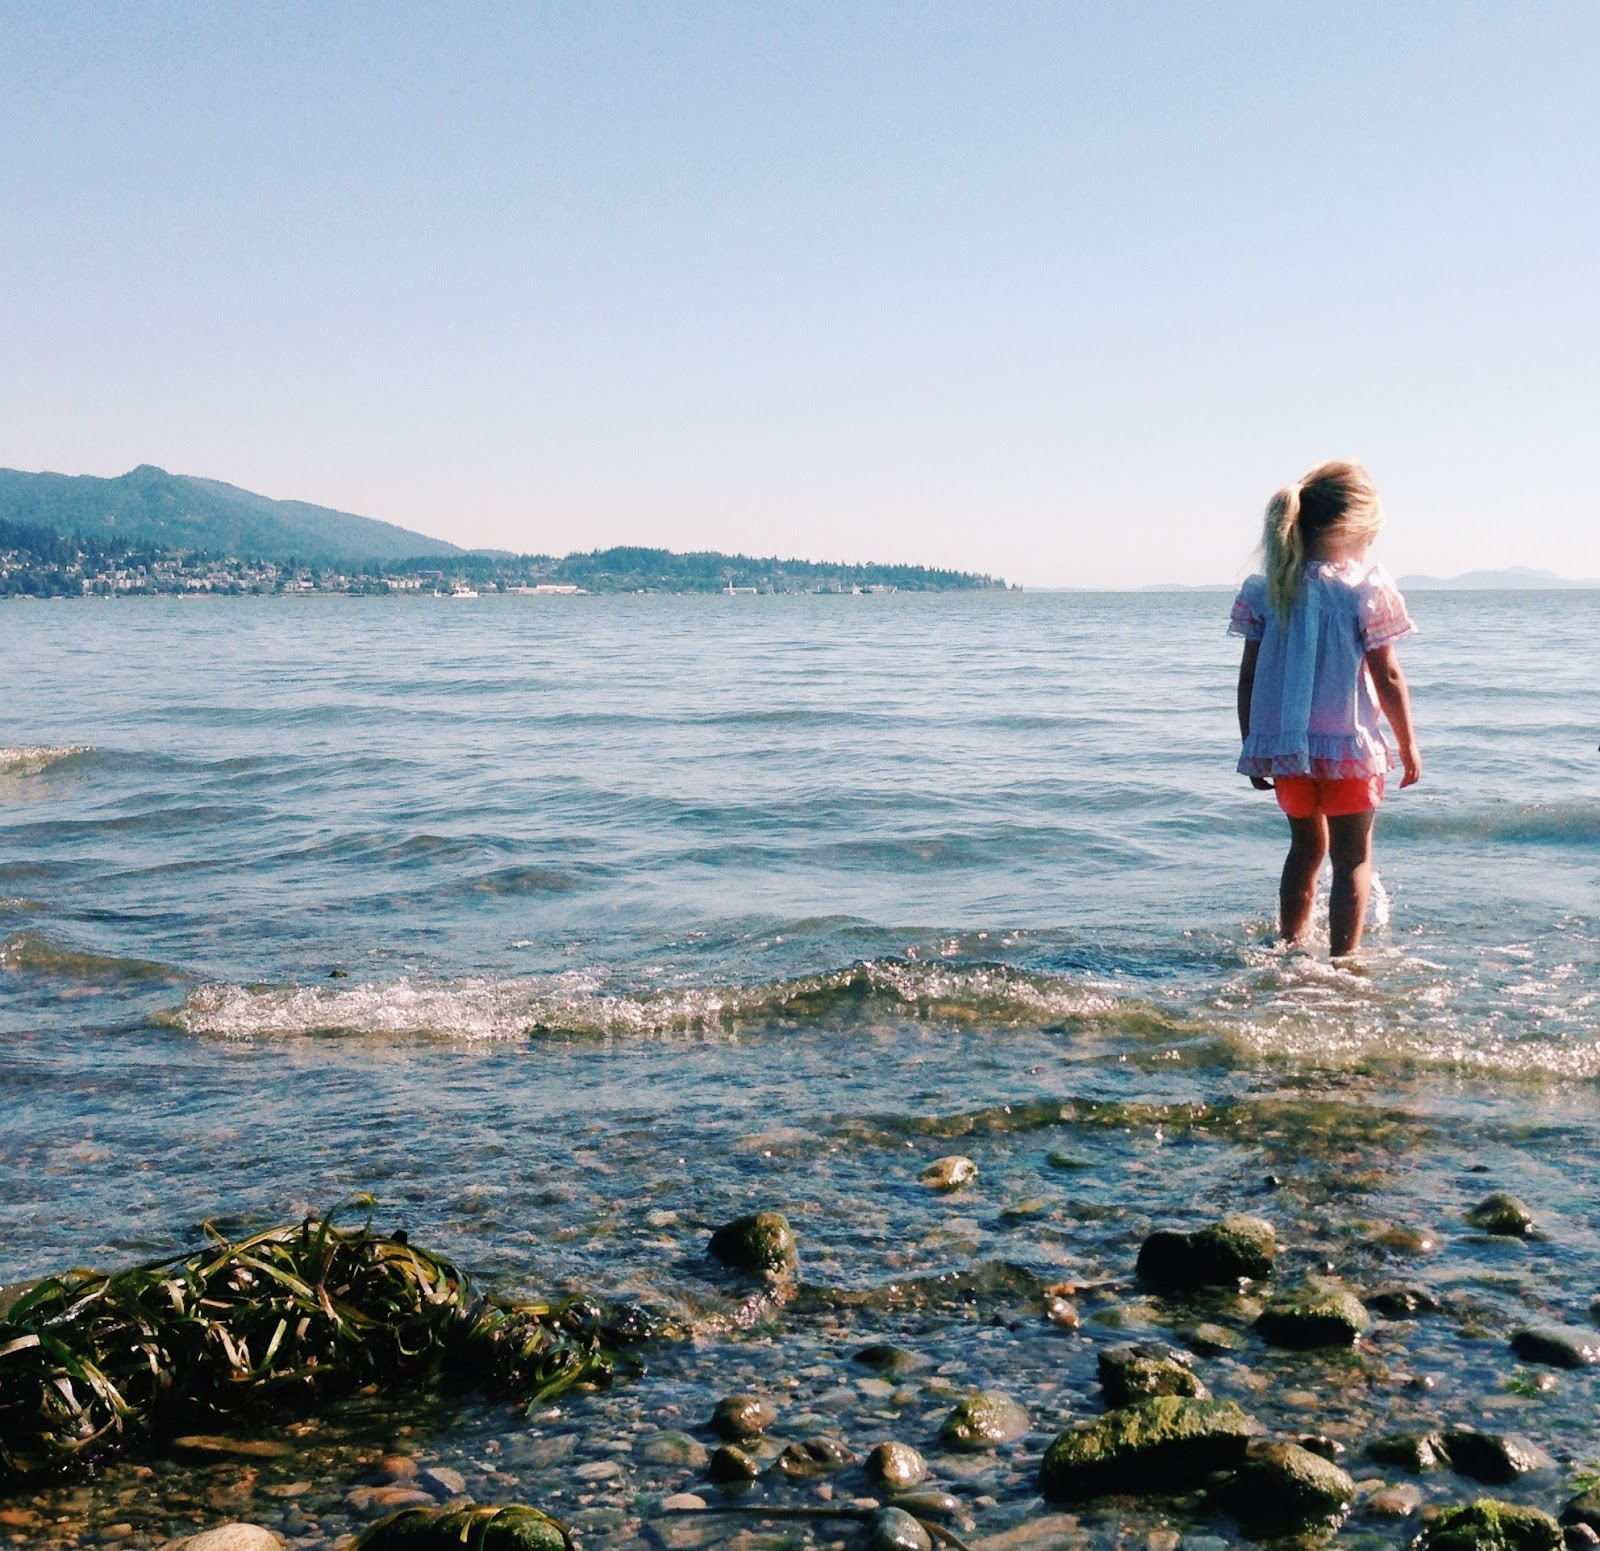 little girl wading in sound with city and mountains in the distance